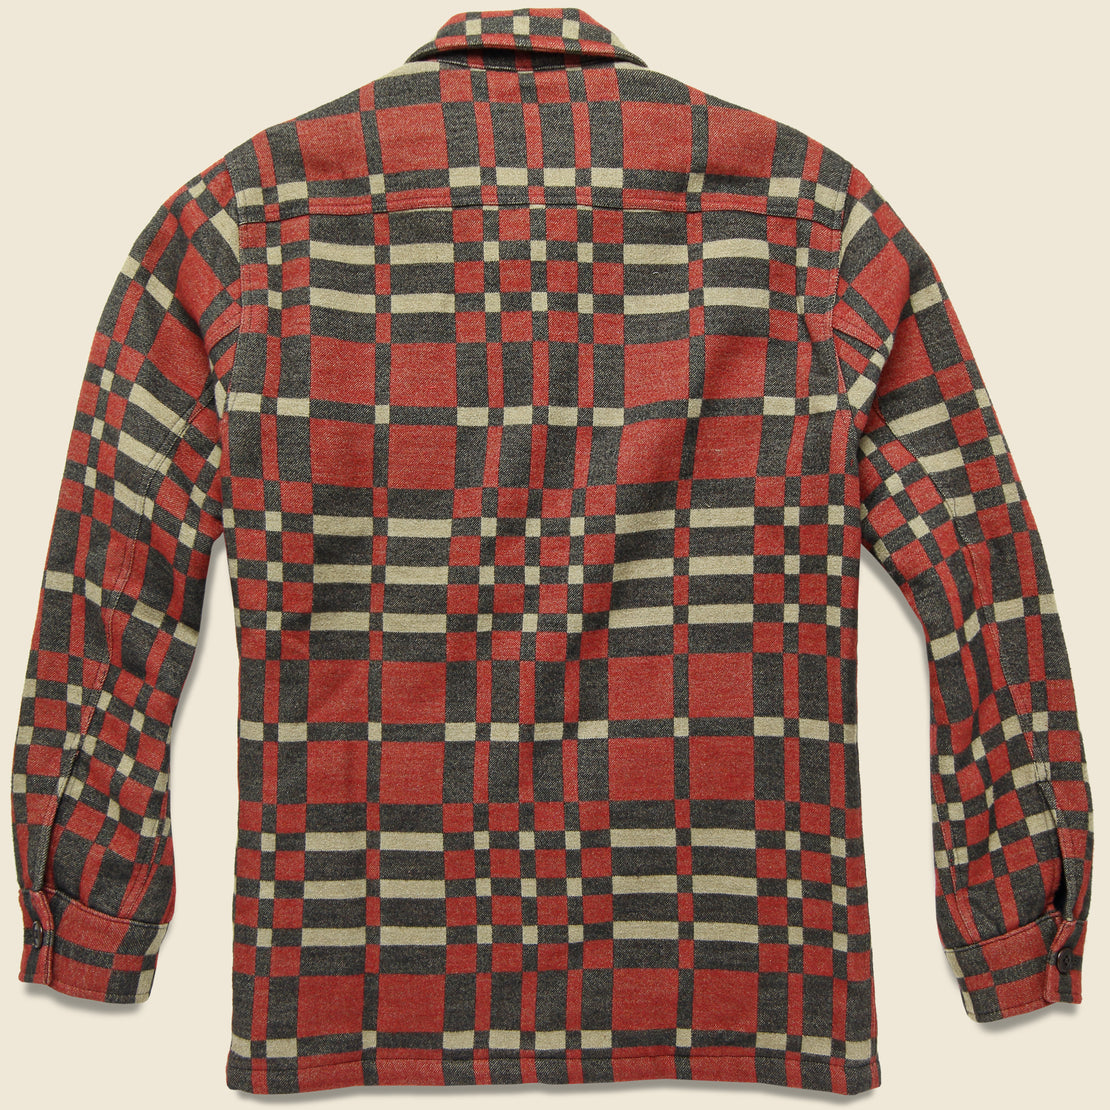 Juno Jacquard Overshirt - Red/Black